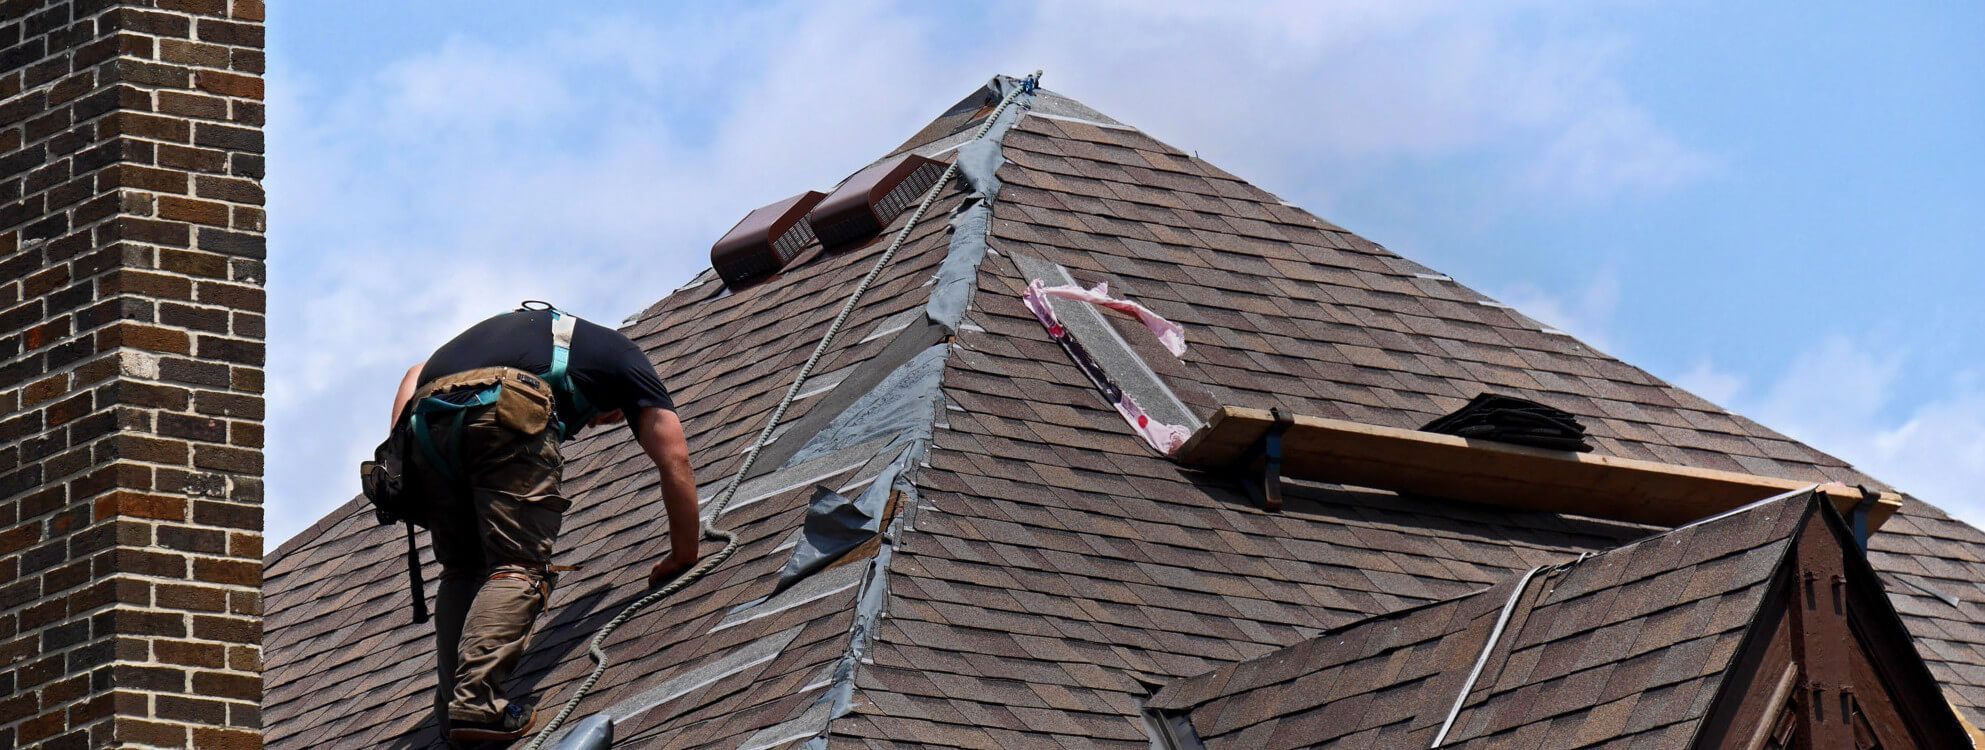 Madison Roofing U0026 Repair Has Been Rated With 22 Experience Points Based On  Fixru0027s Rating System.